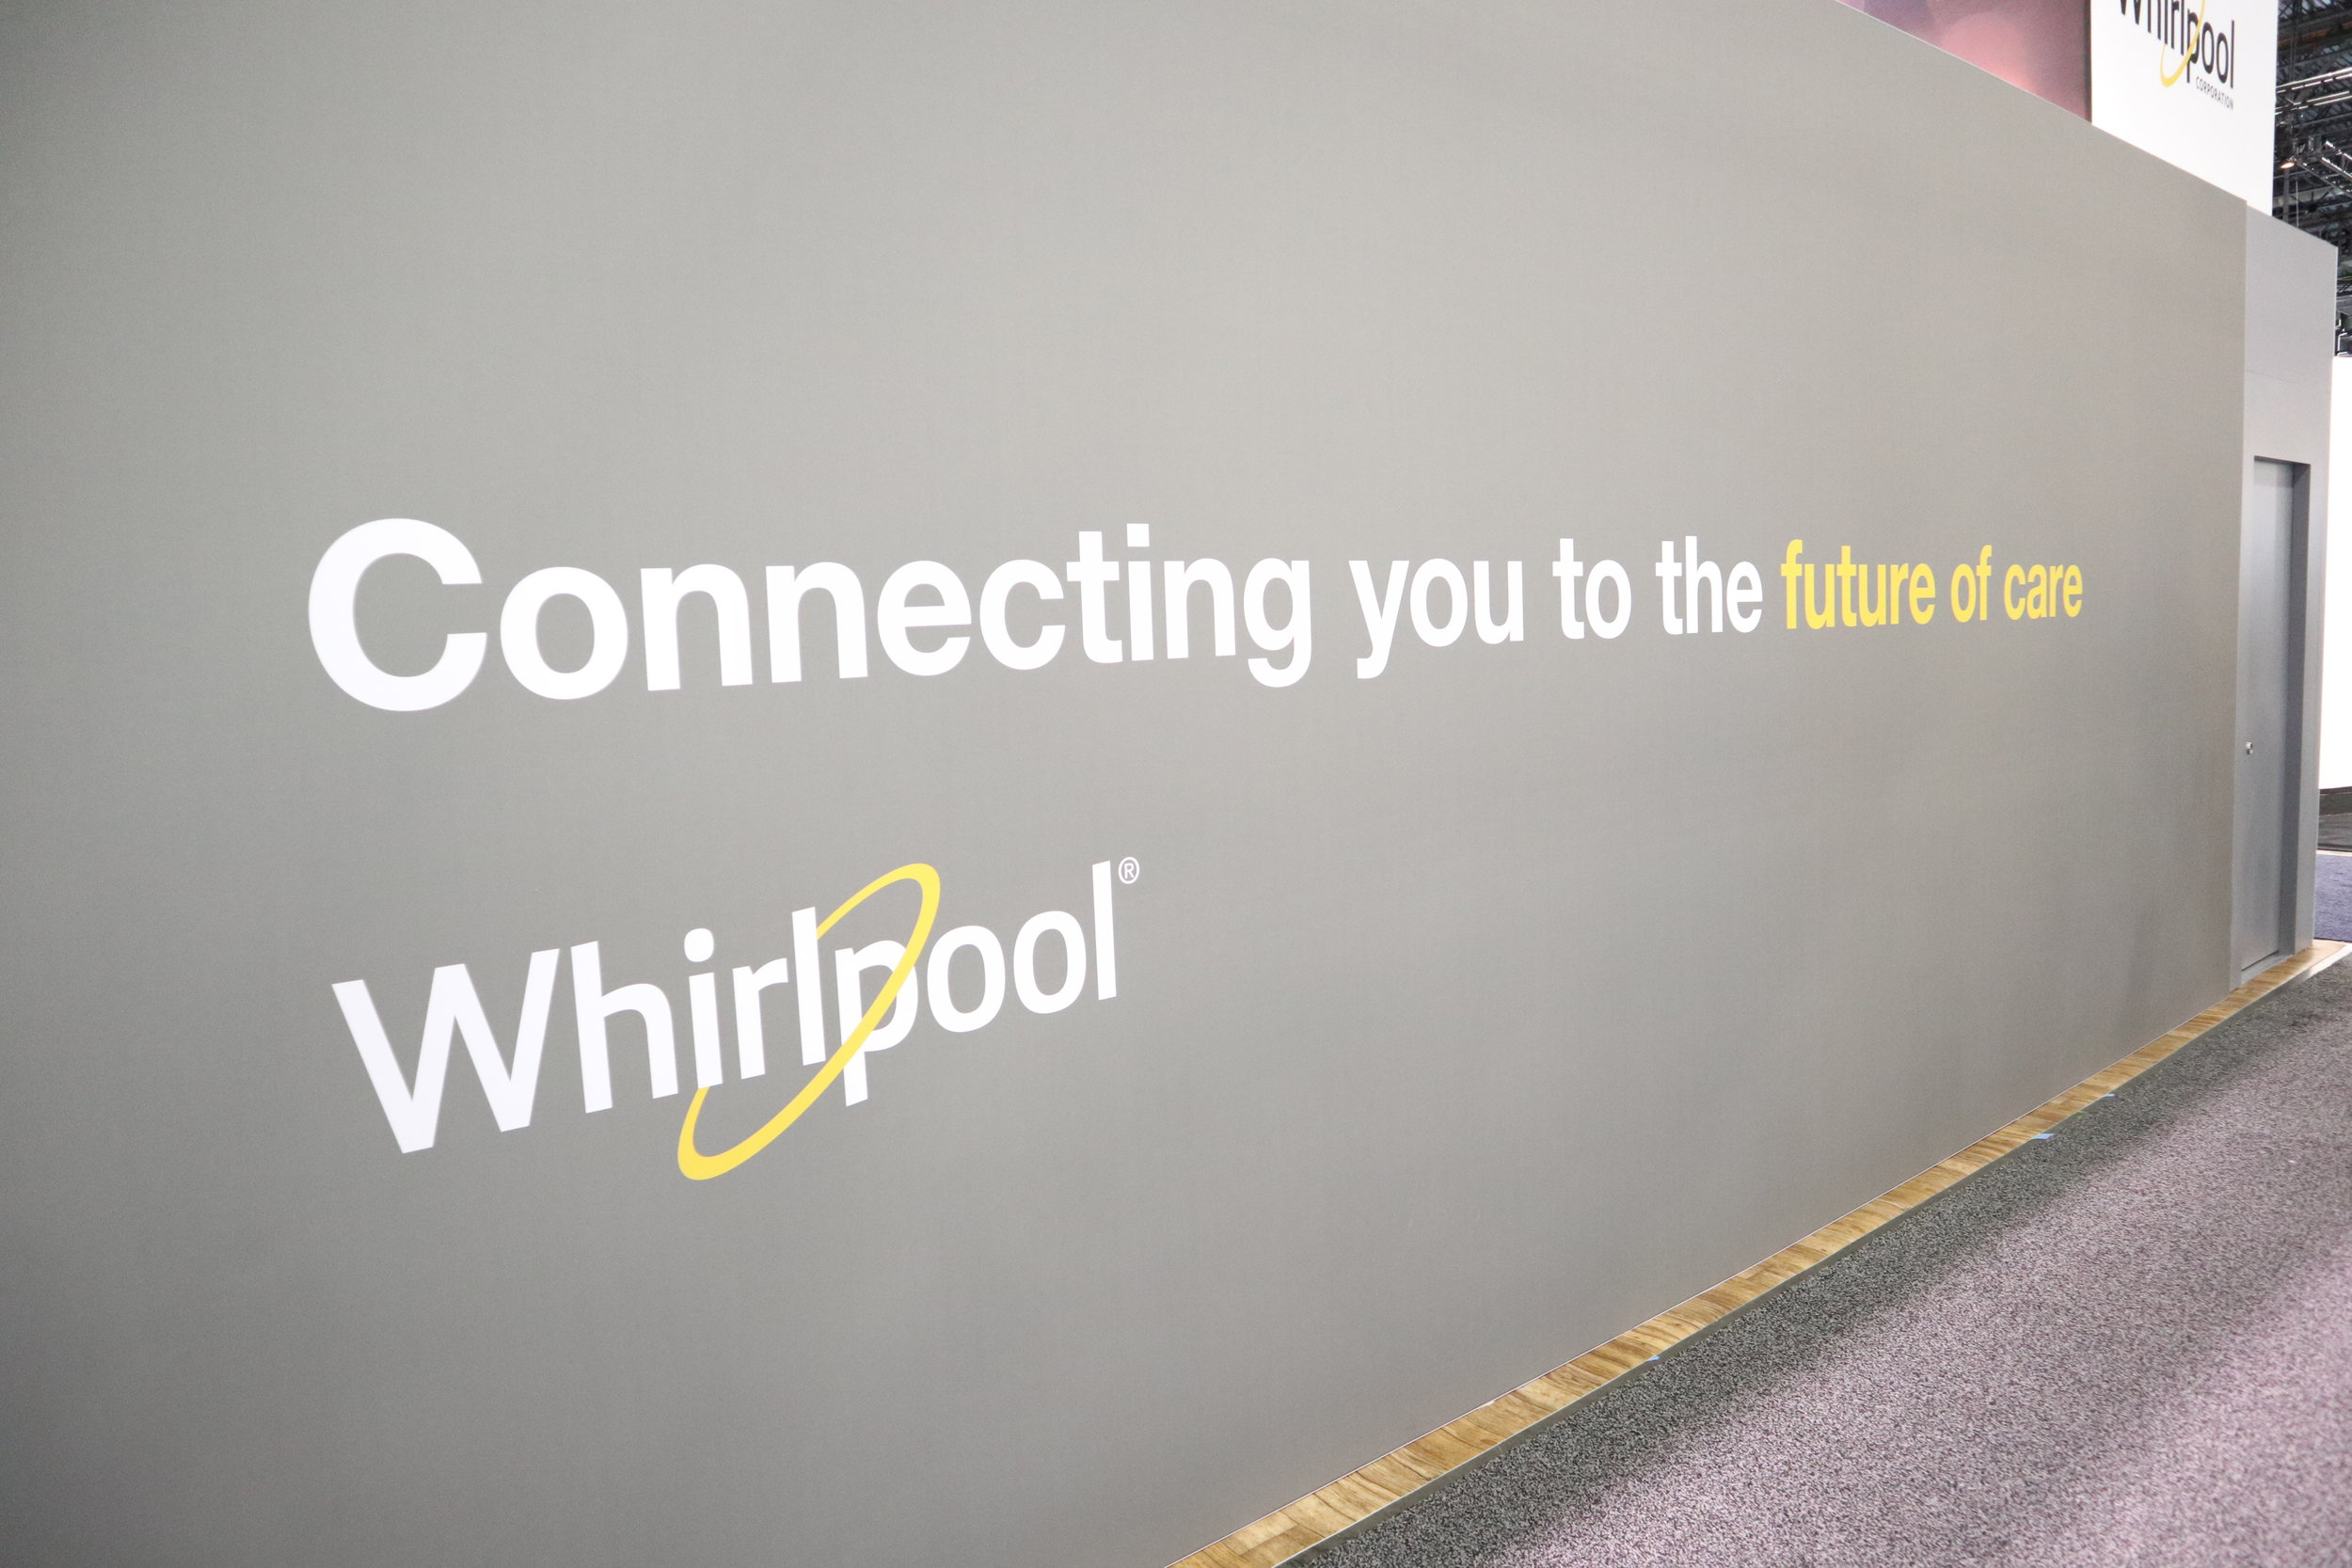 It's evident Whirlpool acknowledges the direct revenue opportunity that the IoT brings to existing products